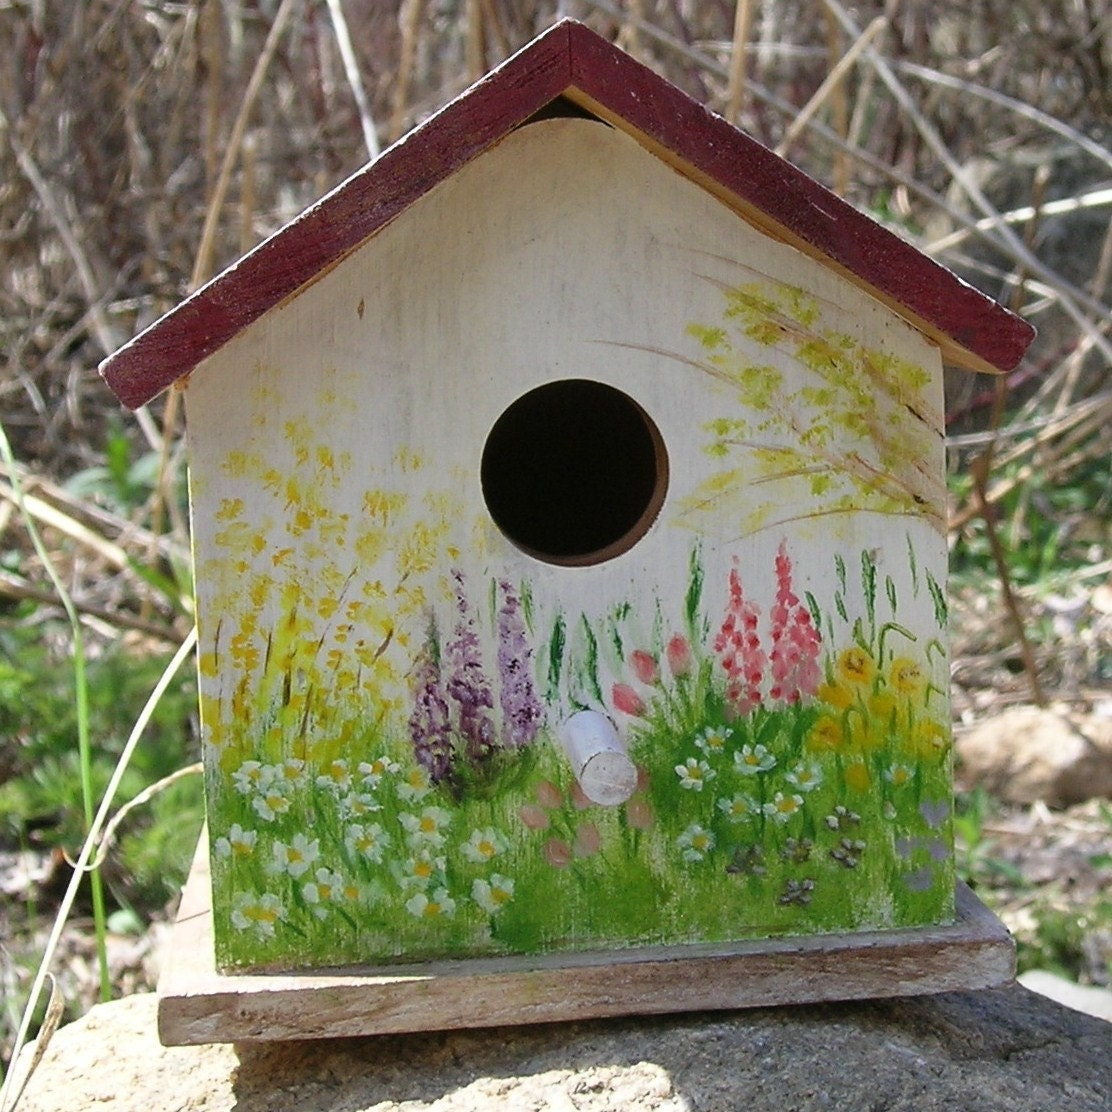 Birds in a Spring Garden - Birdhouse